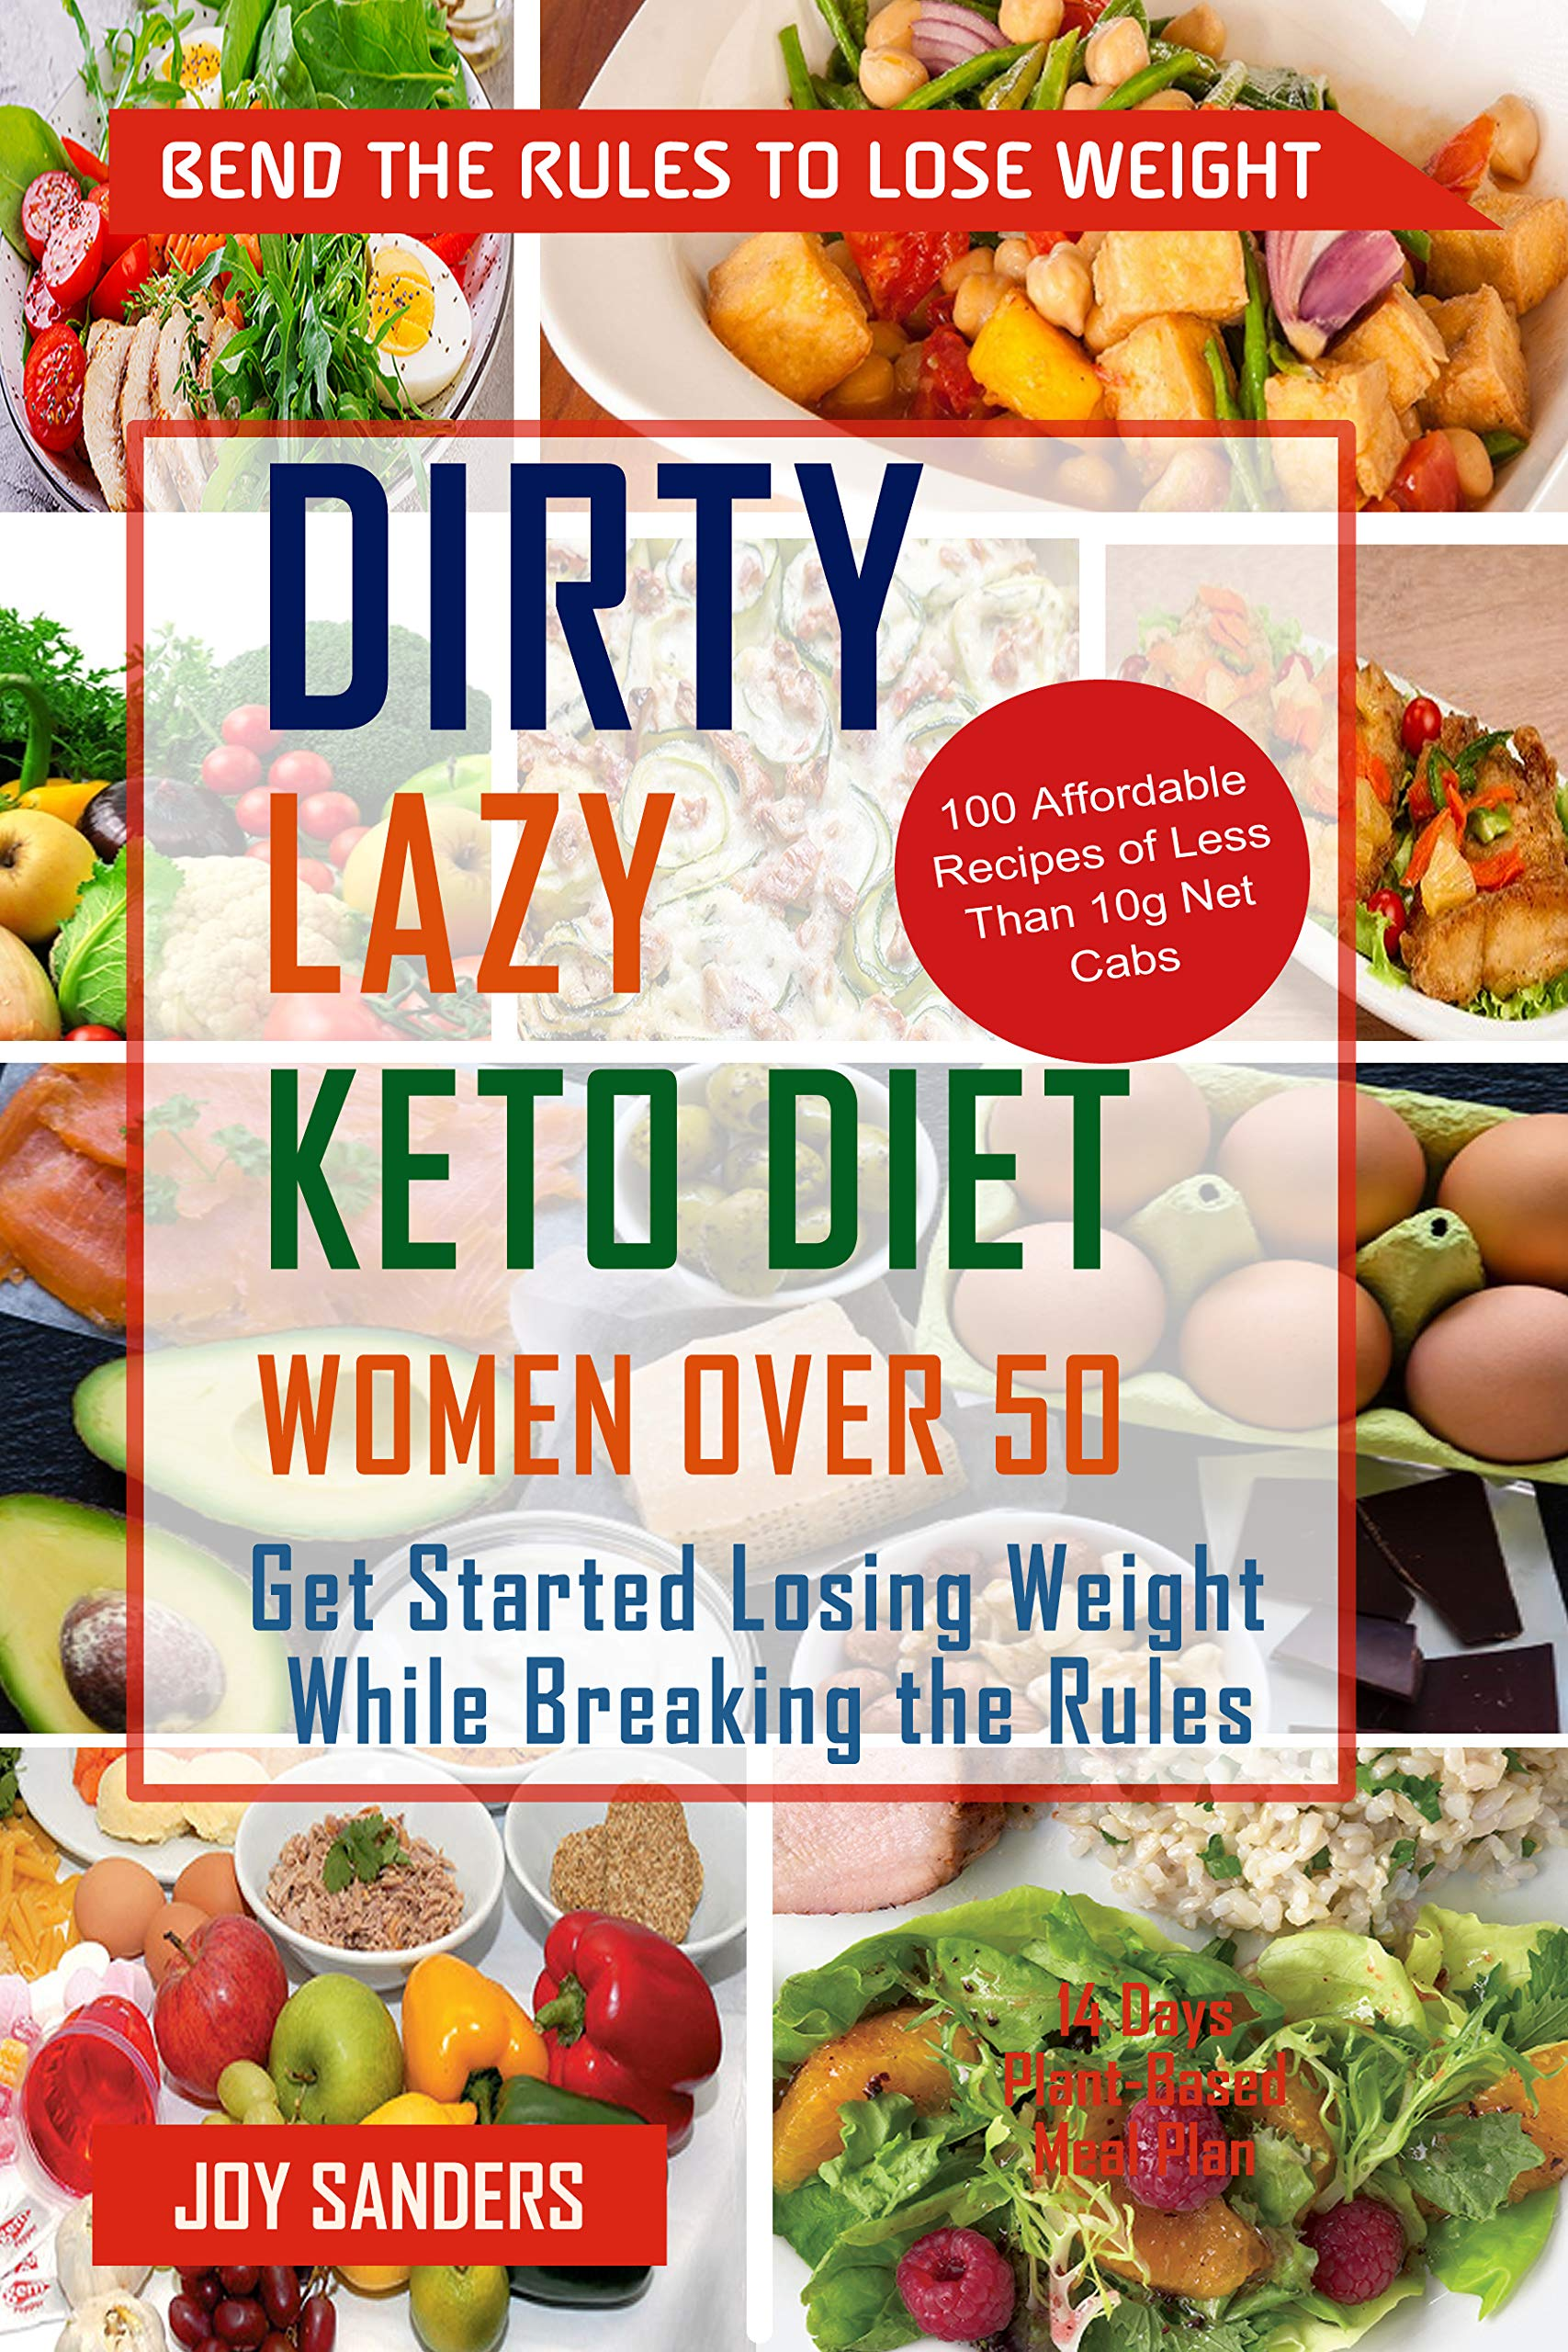 Dirty, Lazy, Keto Diet For Women Over 50: Get Started Losing Weight While Breking the Rules